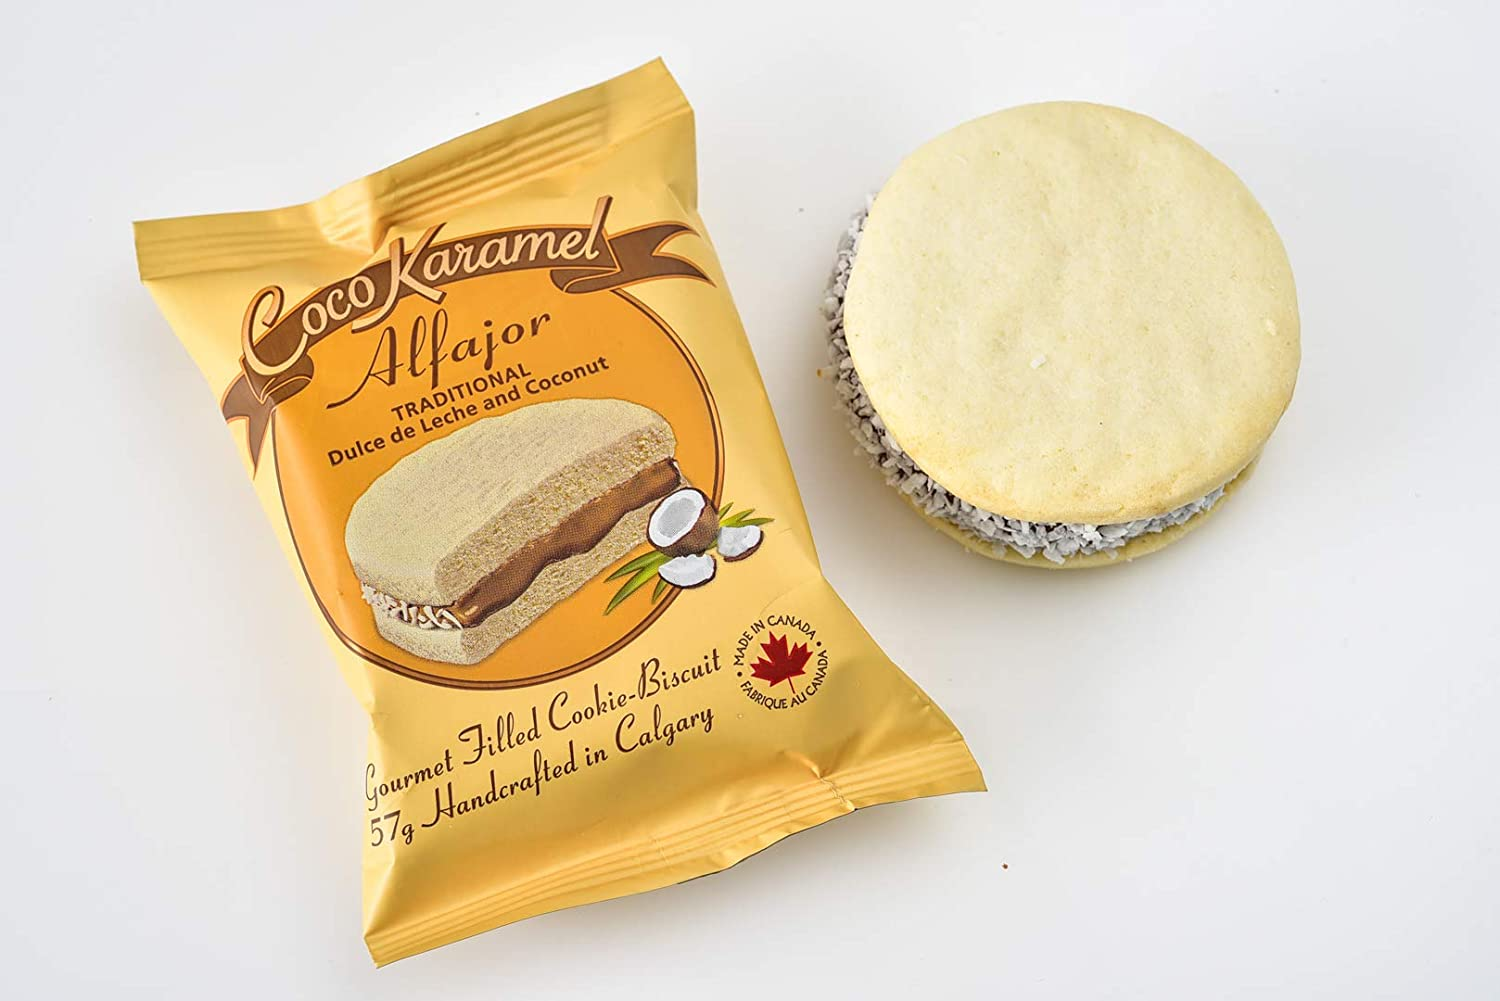 Alfajores - Traditional - Dulce de Leche - Gourmet Cookie-Pie - 6 Pack Gift Box: Amazon.com: Grocery & Gourmet Food